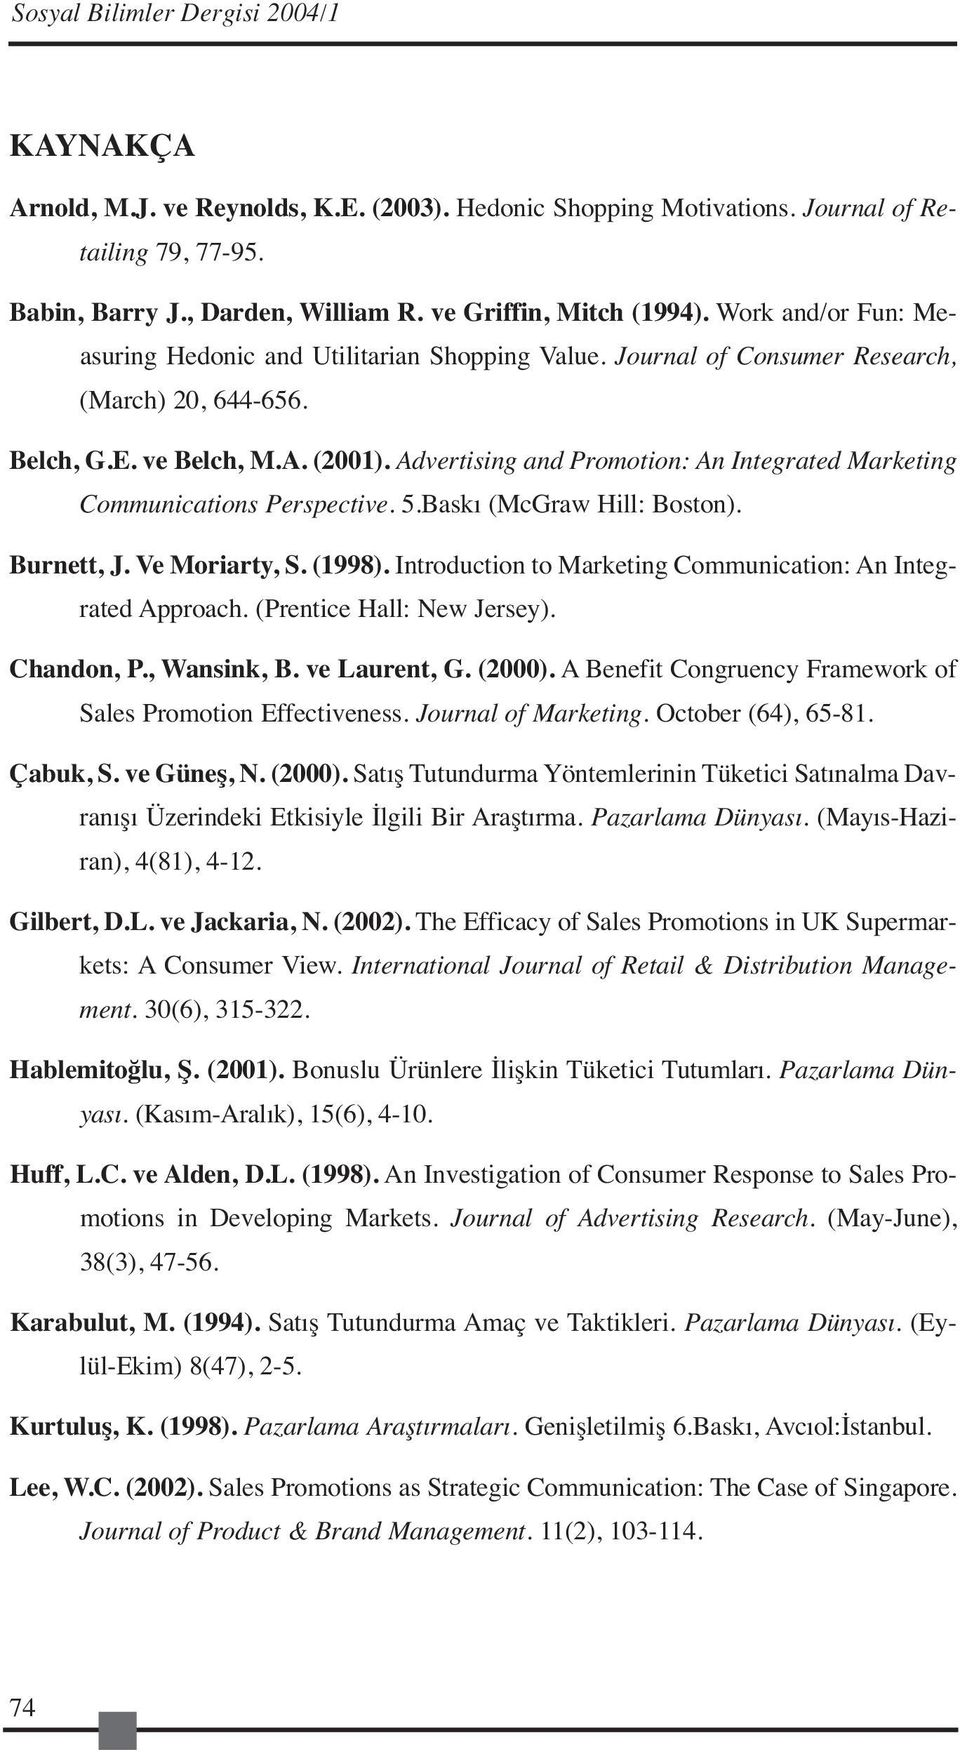 Advertising and Promotion: An Integrated Marketing Communications Perspective. 5.Baskı (McGraw Hill: Boston). Burnett, J. Ve Moriarty, S. (1998).